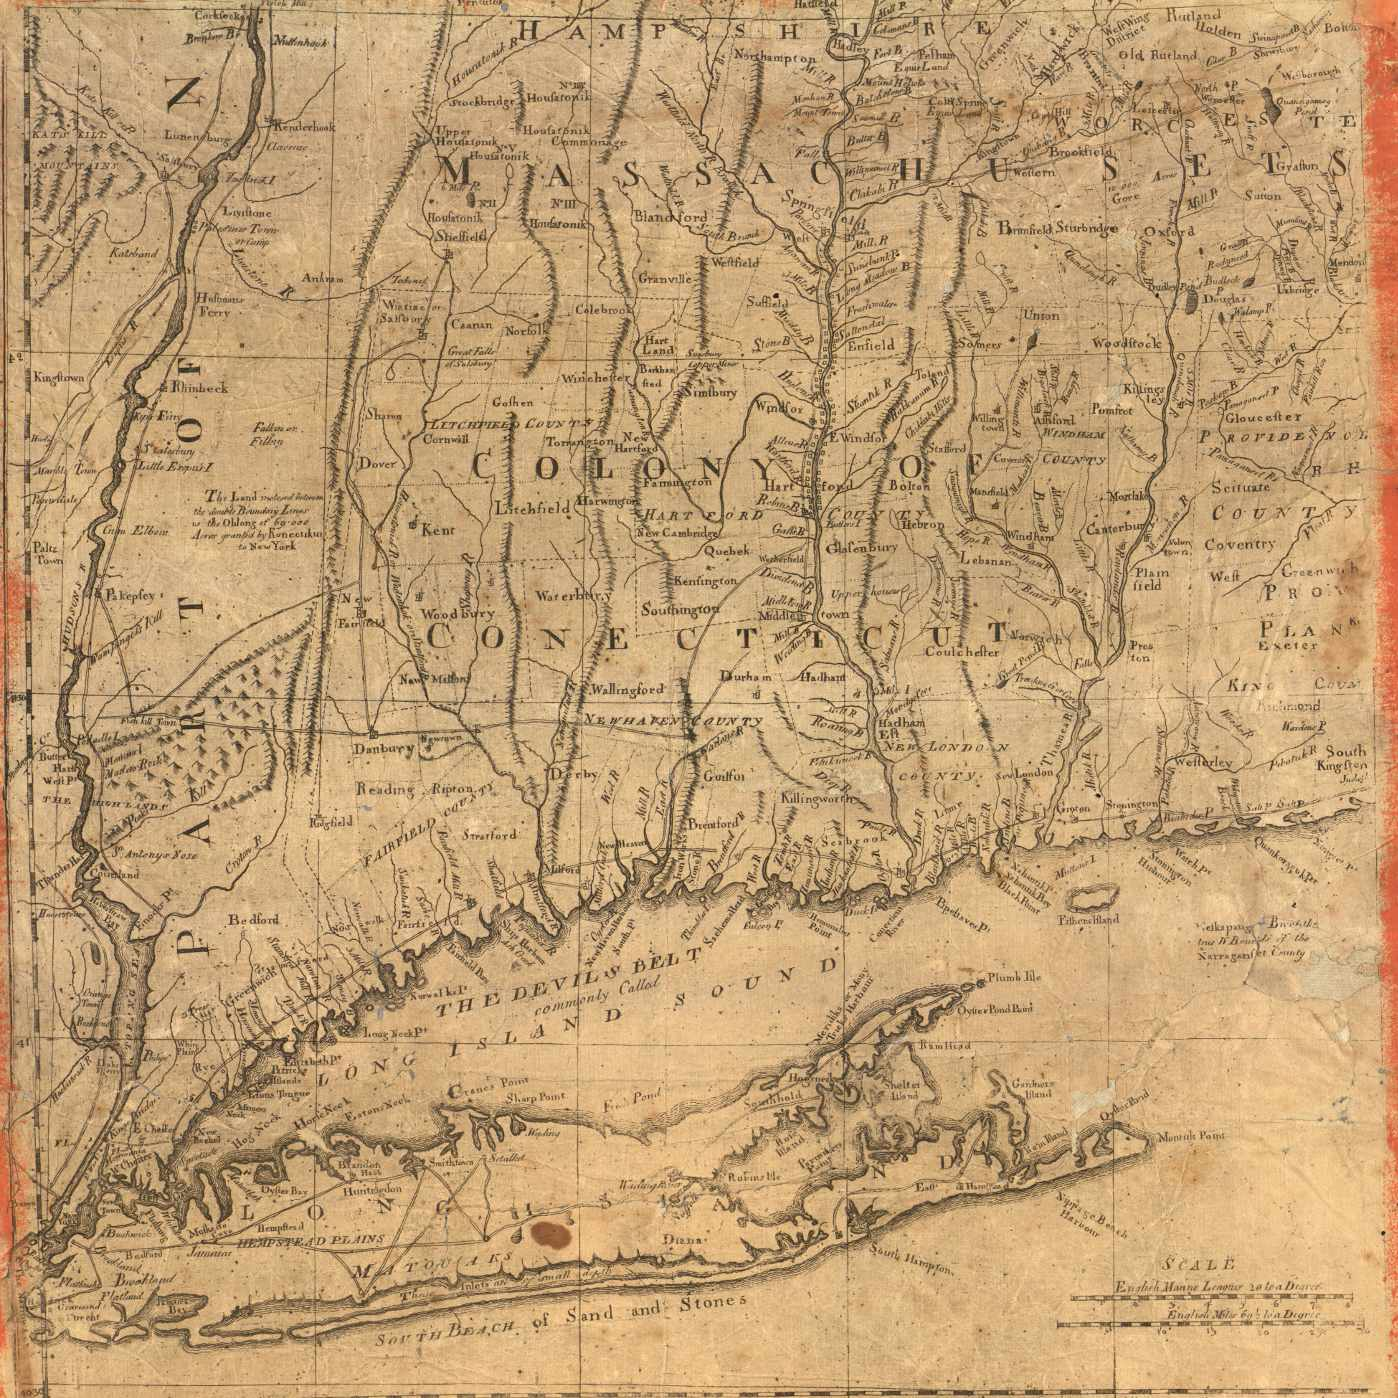 Map_of_the_colonies_of_Rhode_Island,_Connecticut,_and_parts_of_Massachusetts_and_New_York